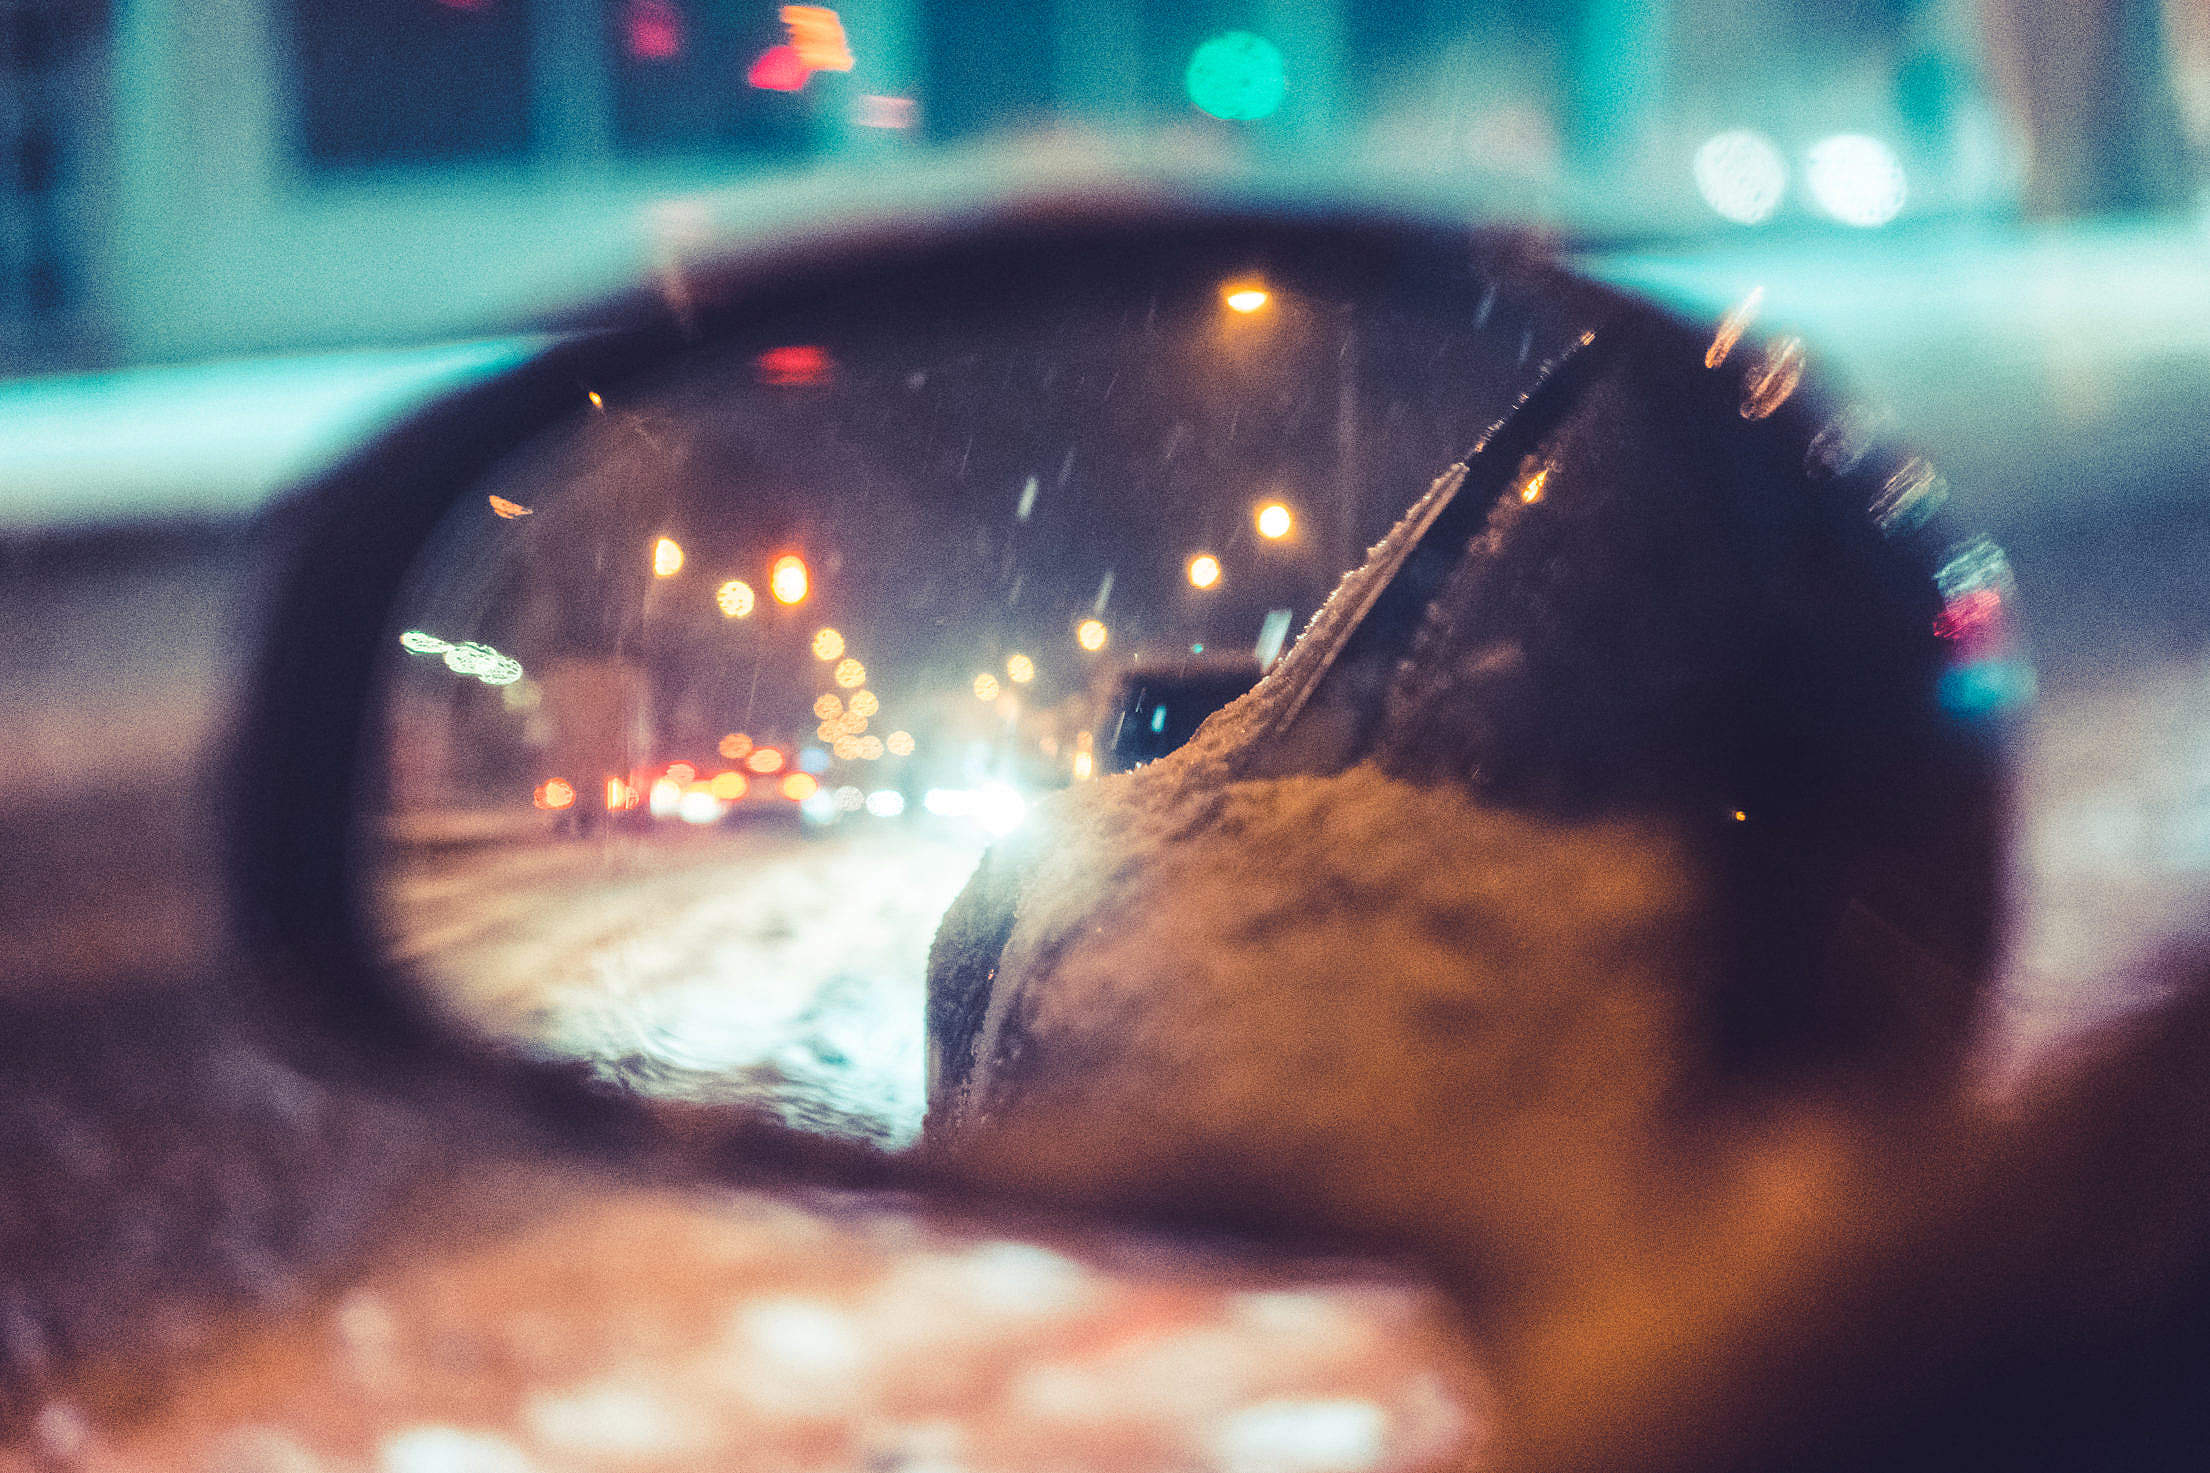 Car Side Rear-View Mirror in Snowy Night Free Stock Photo